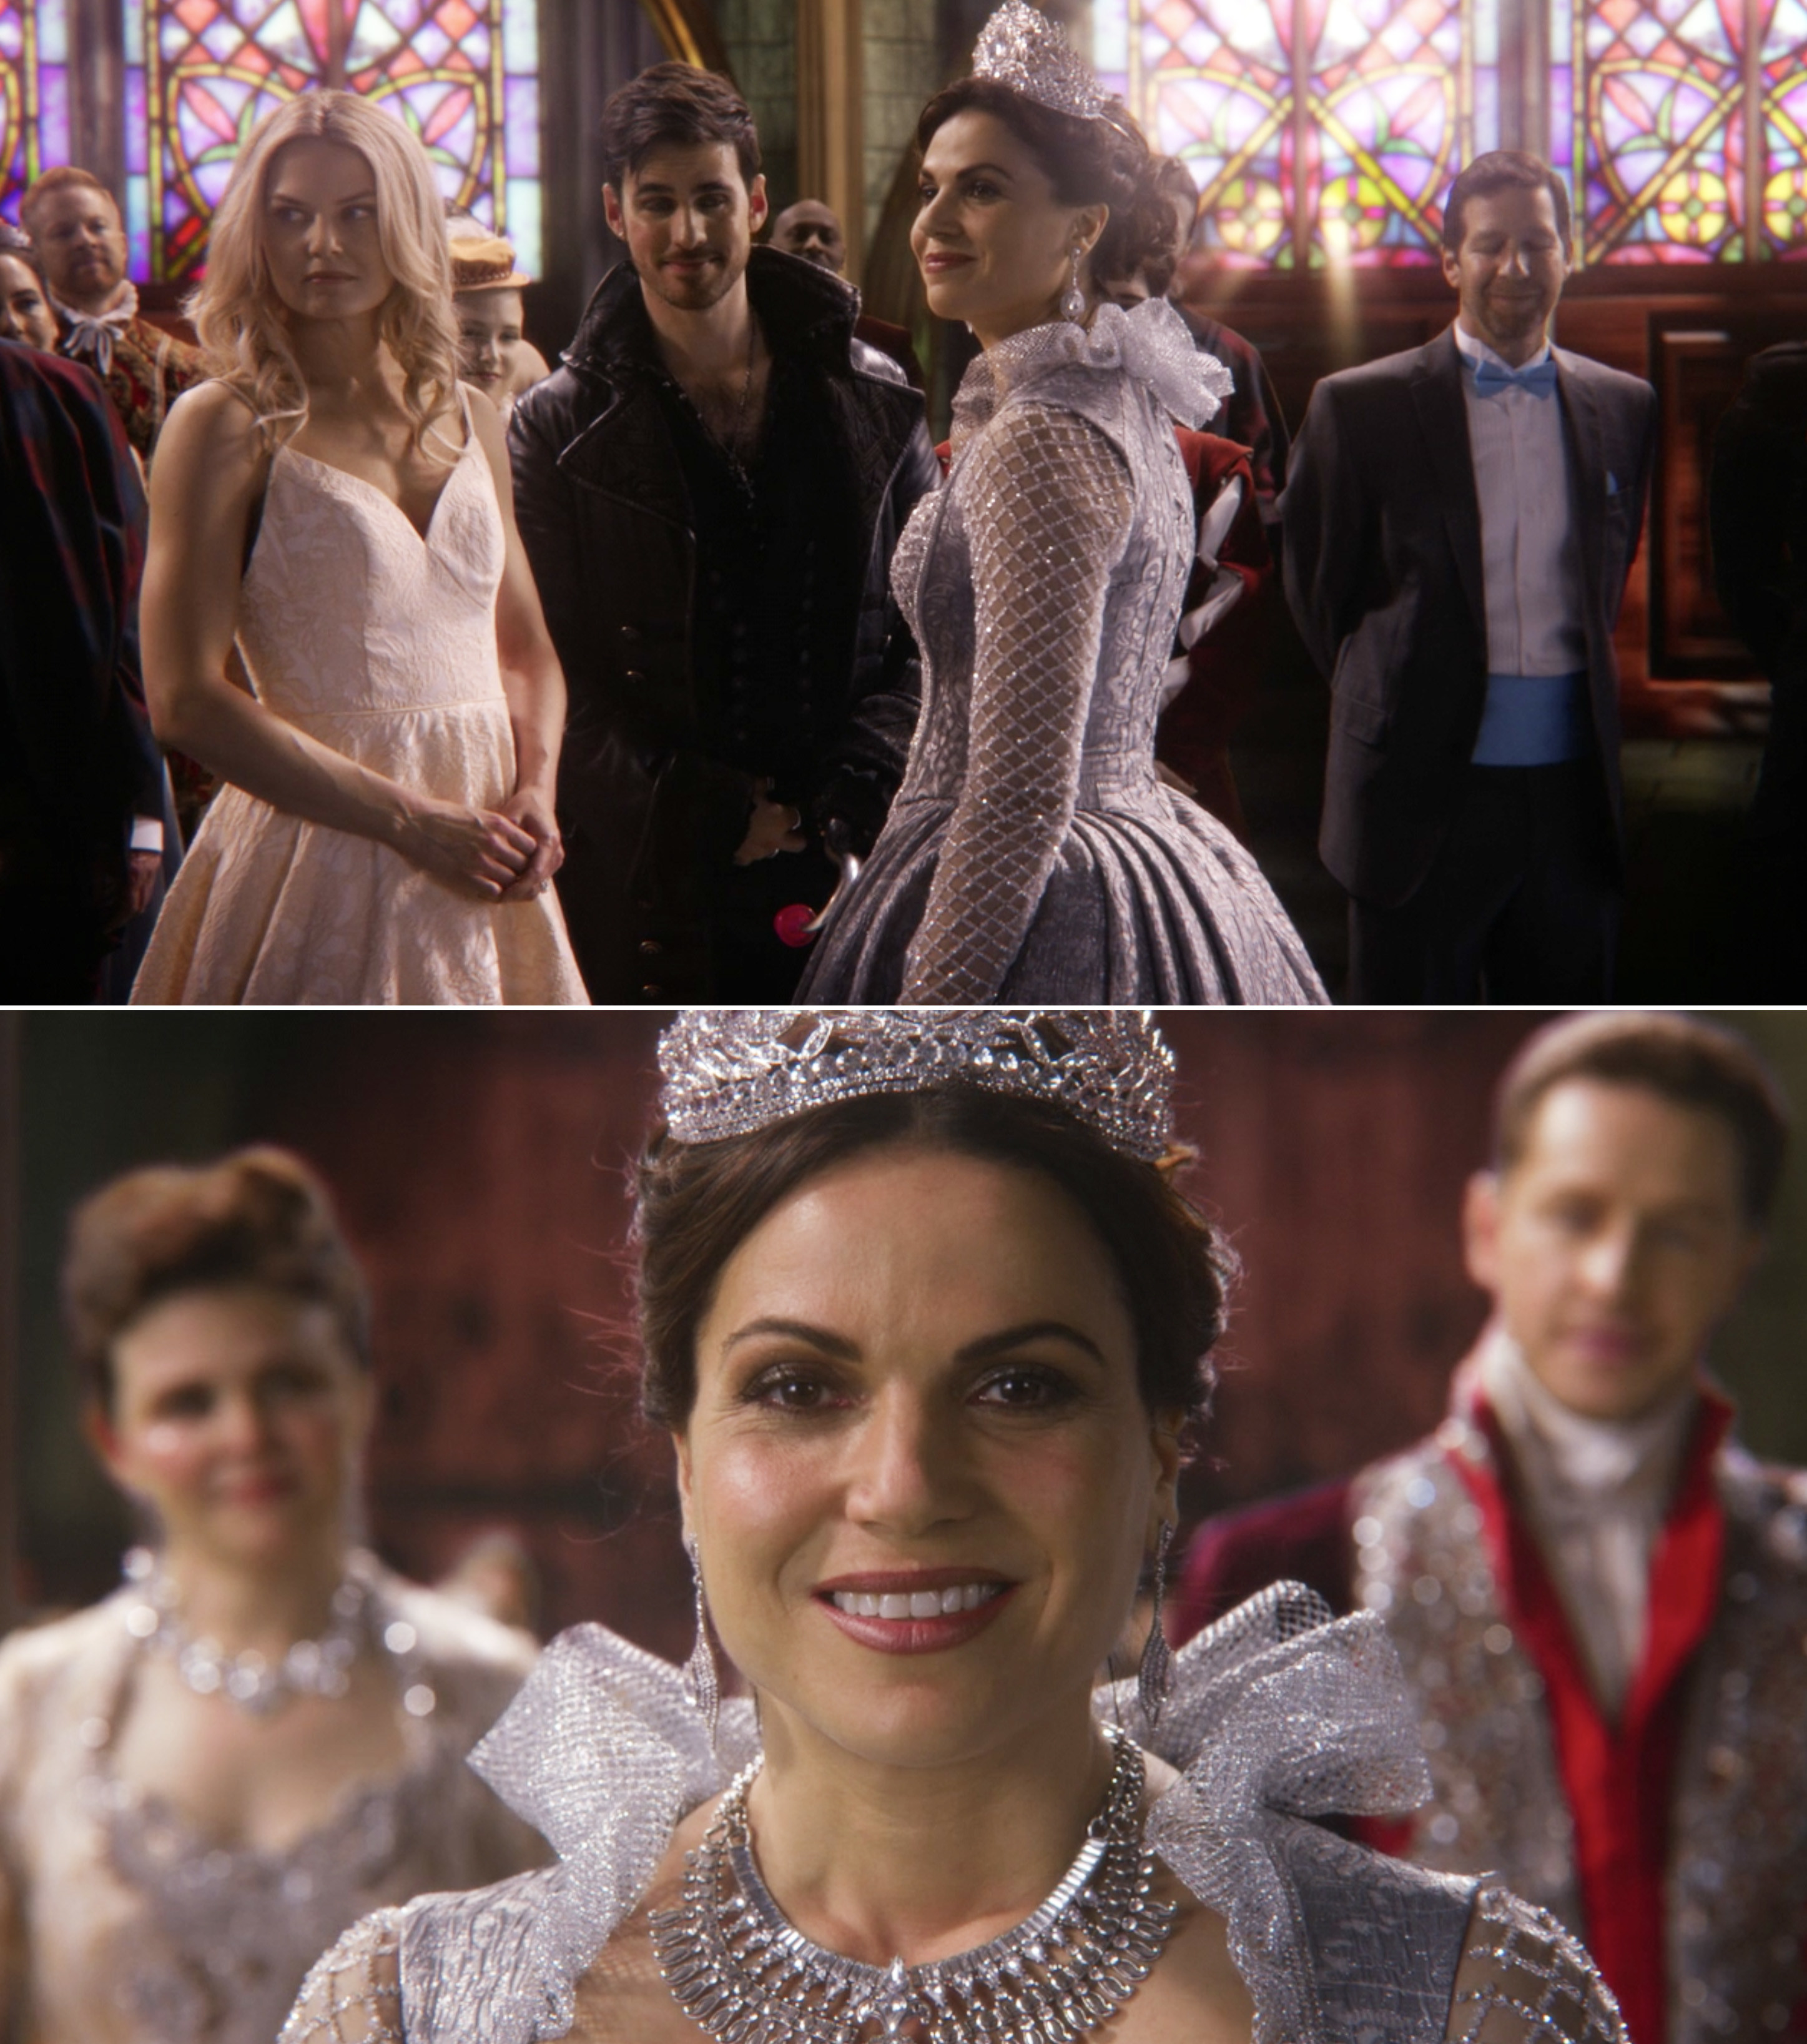 Regina during the series finale getting a crown from Prince Charming and Snow White and celebrating with Emma and Hook